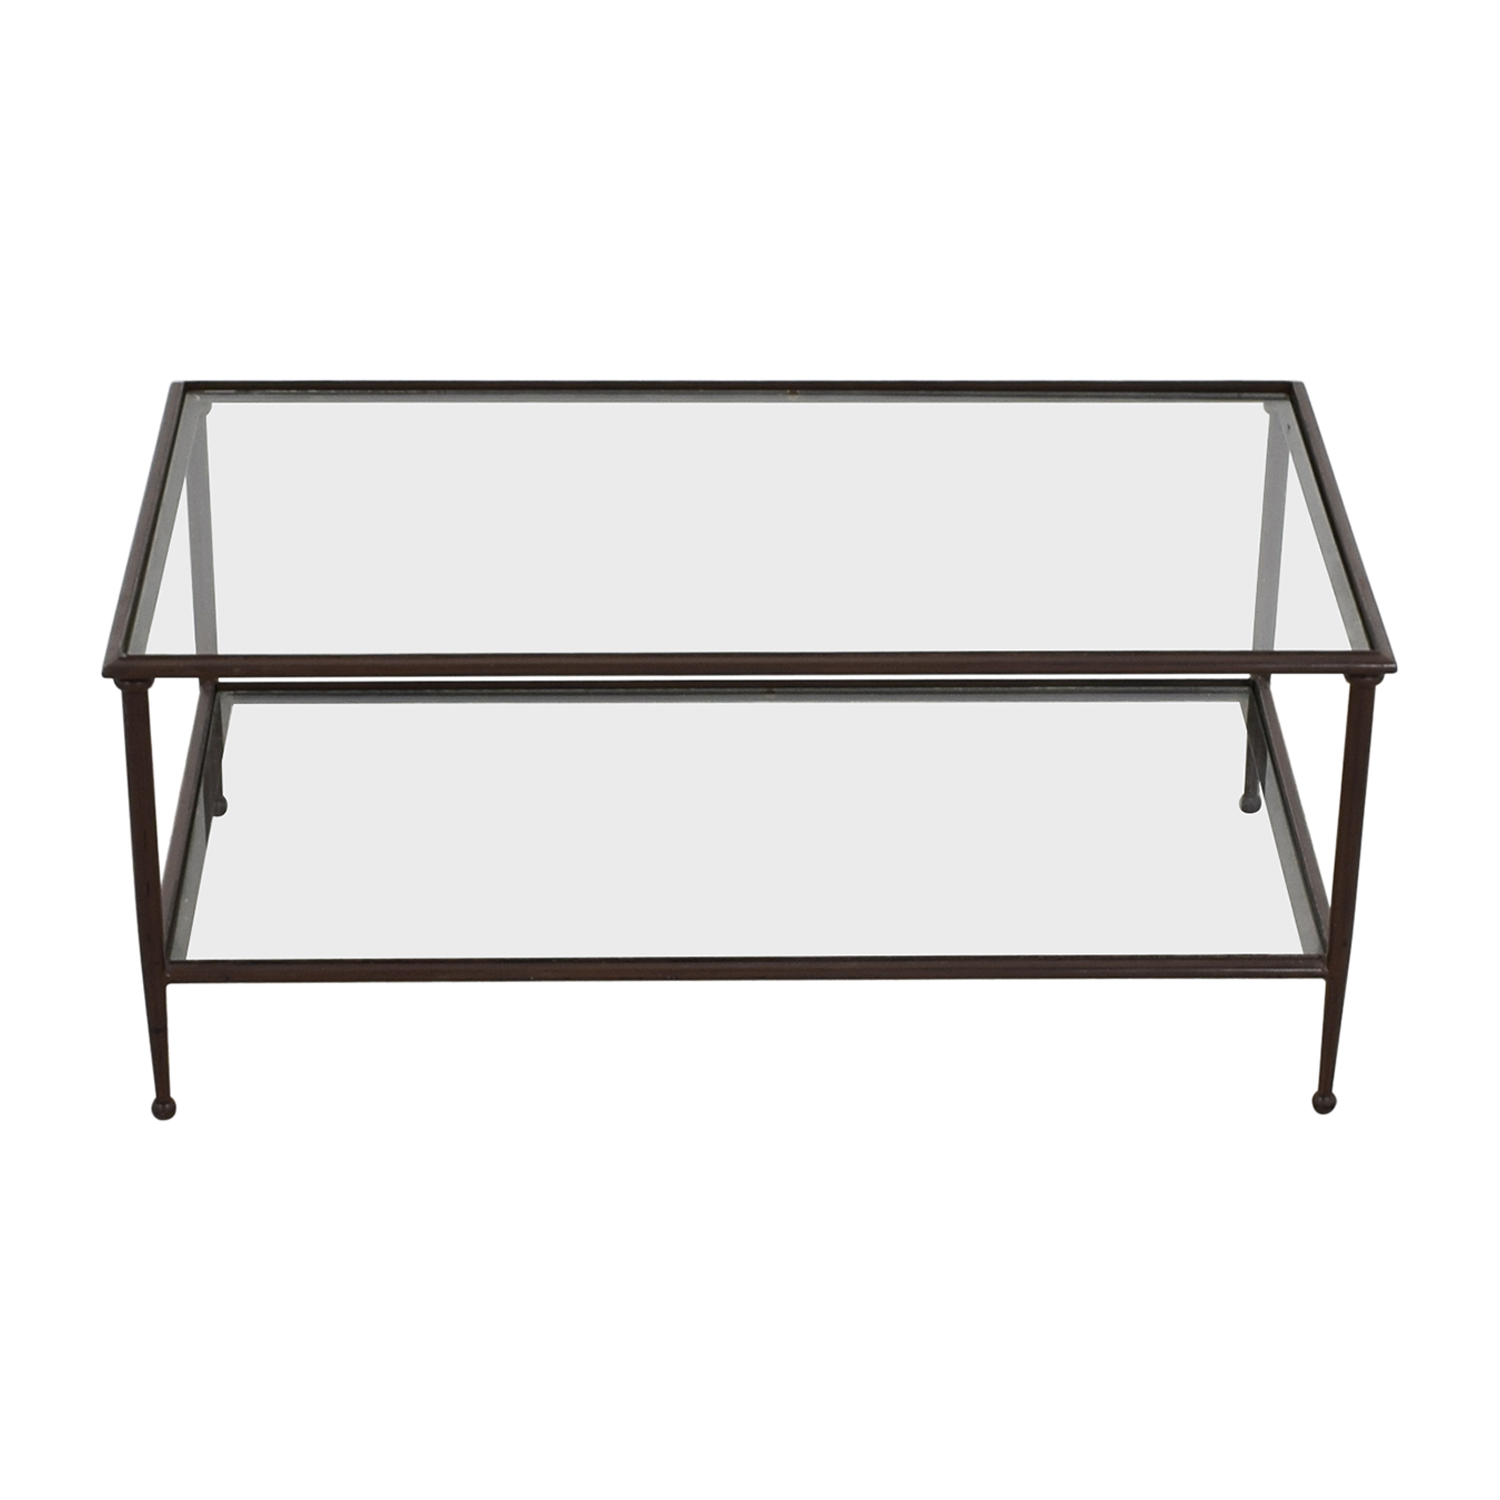 Crate & Barrel Crate & Barrel Glass & Metal Coffee Table on sale